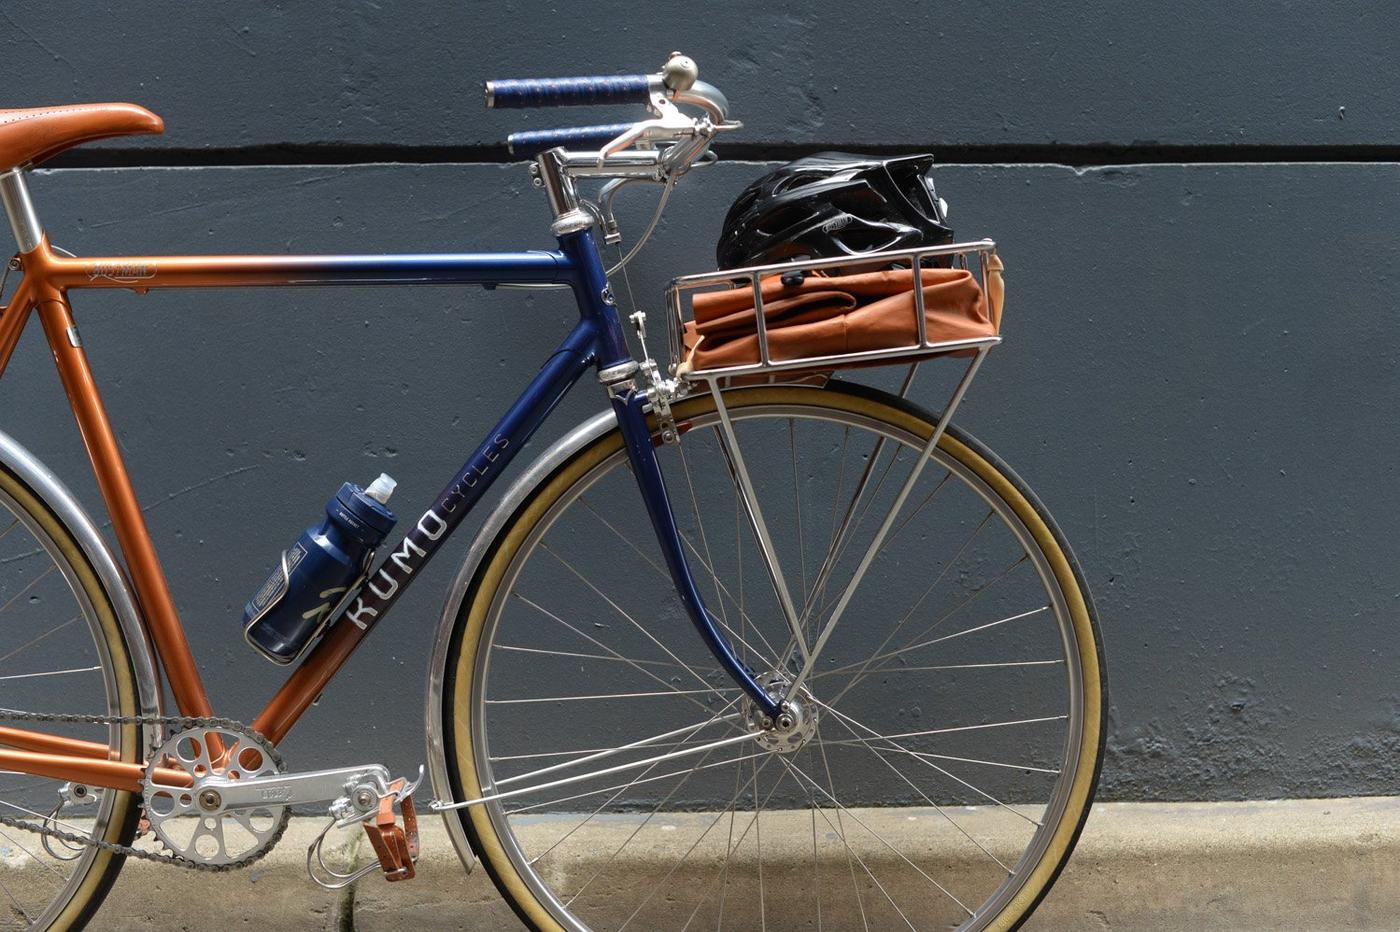 FYXO: Busyman Cycles' KUMO Delivery Bike